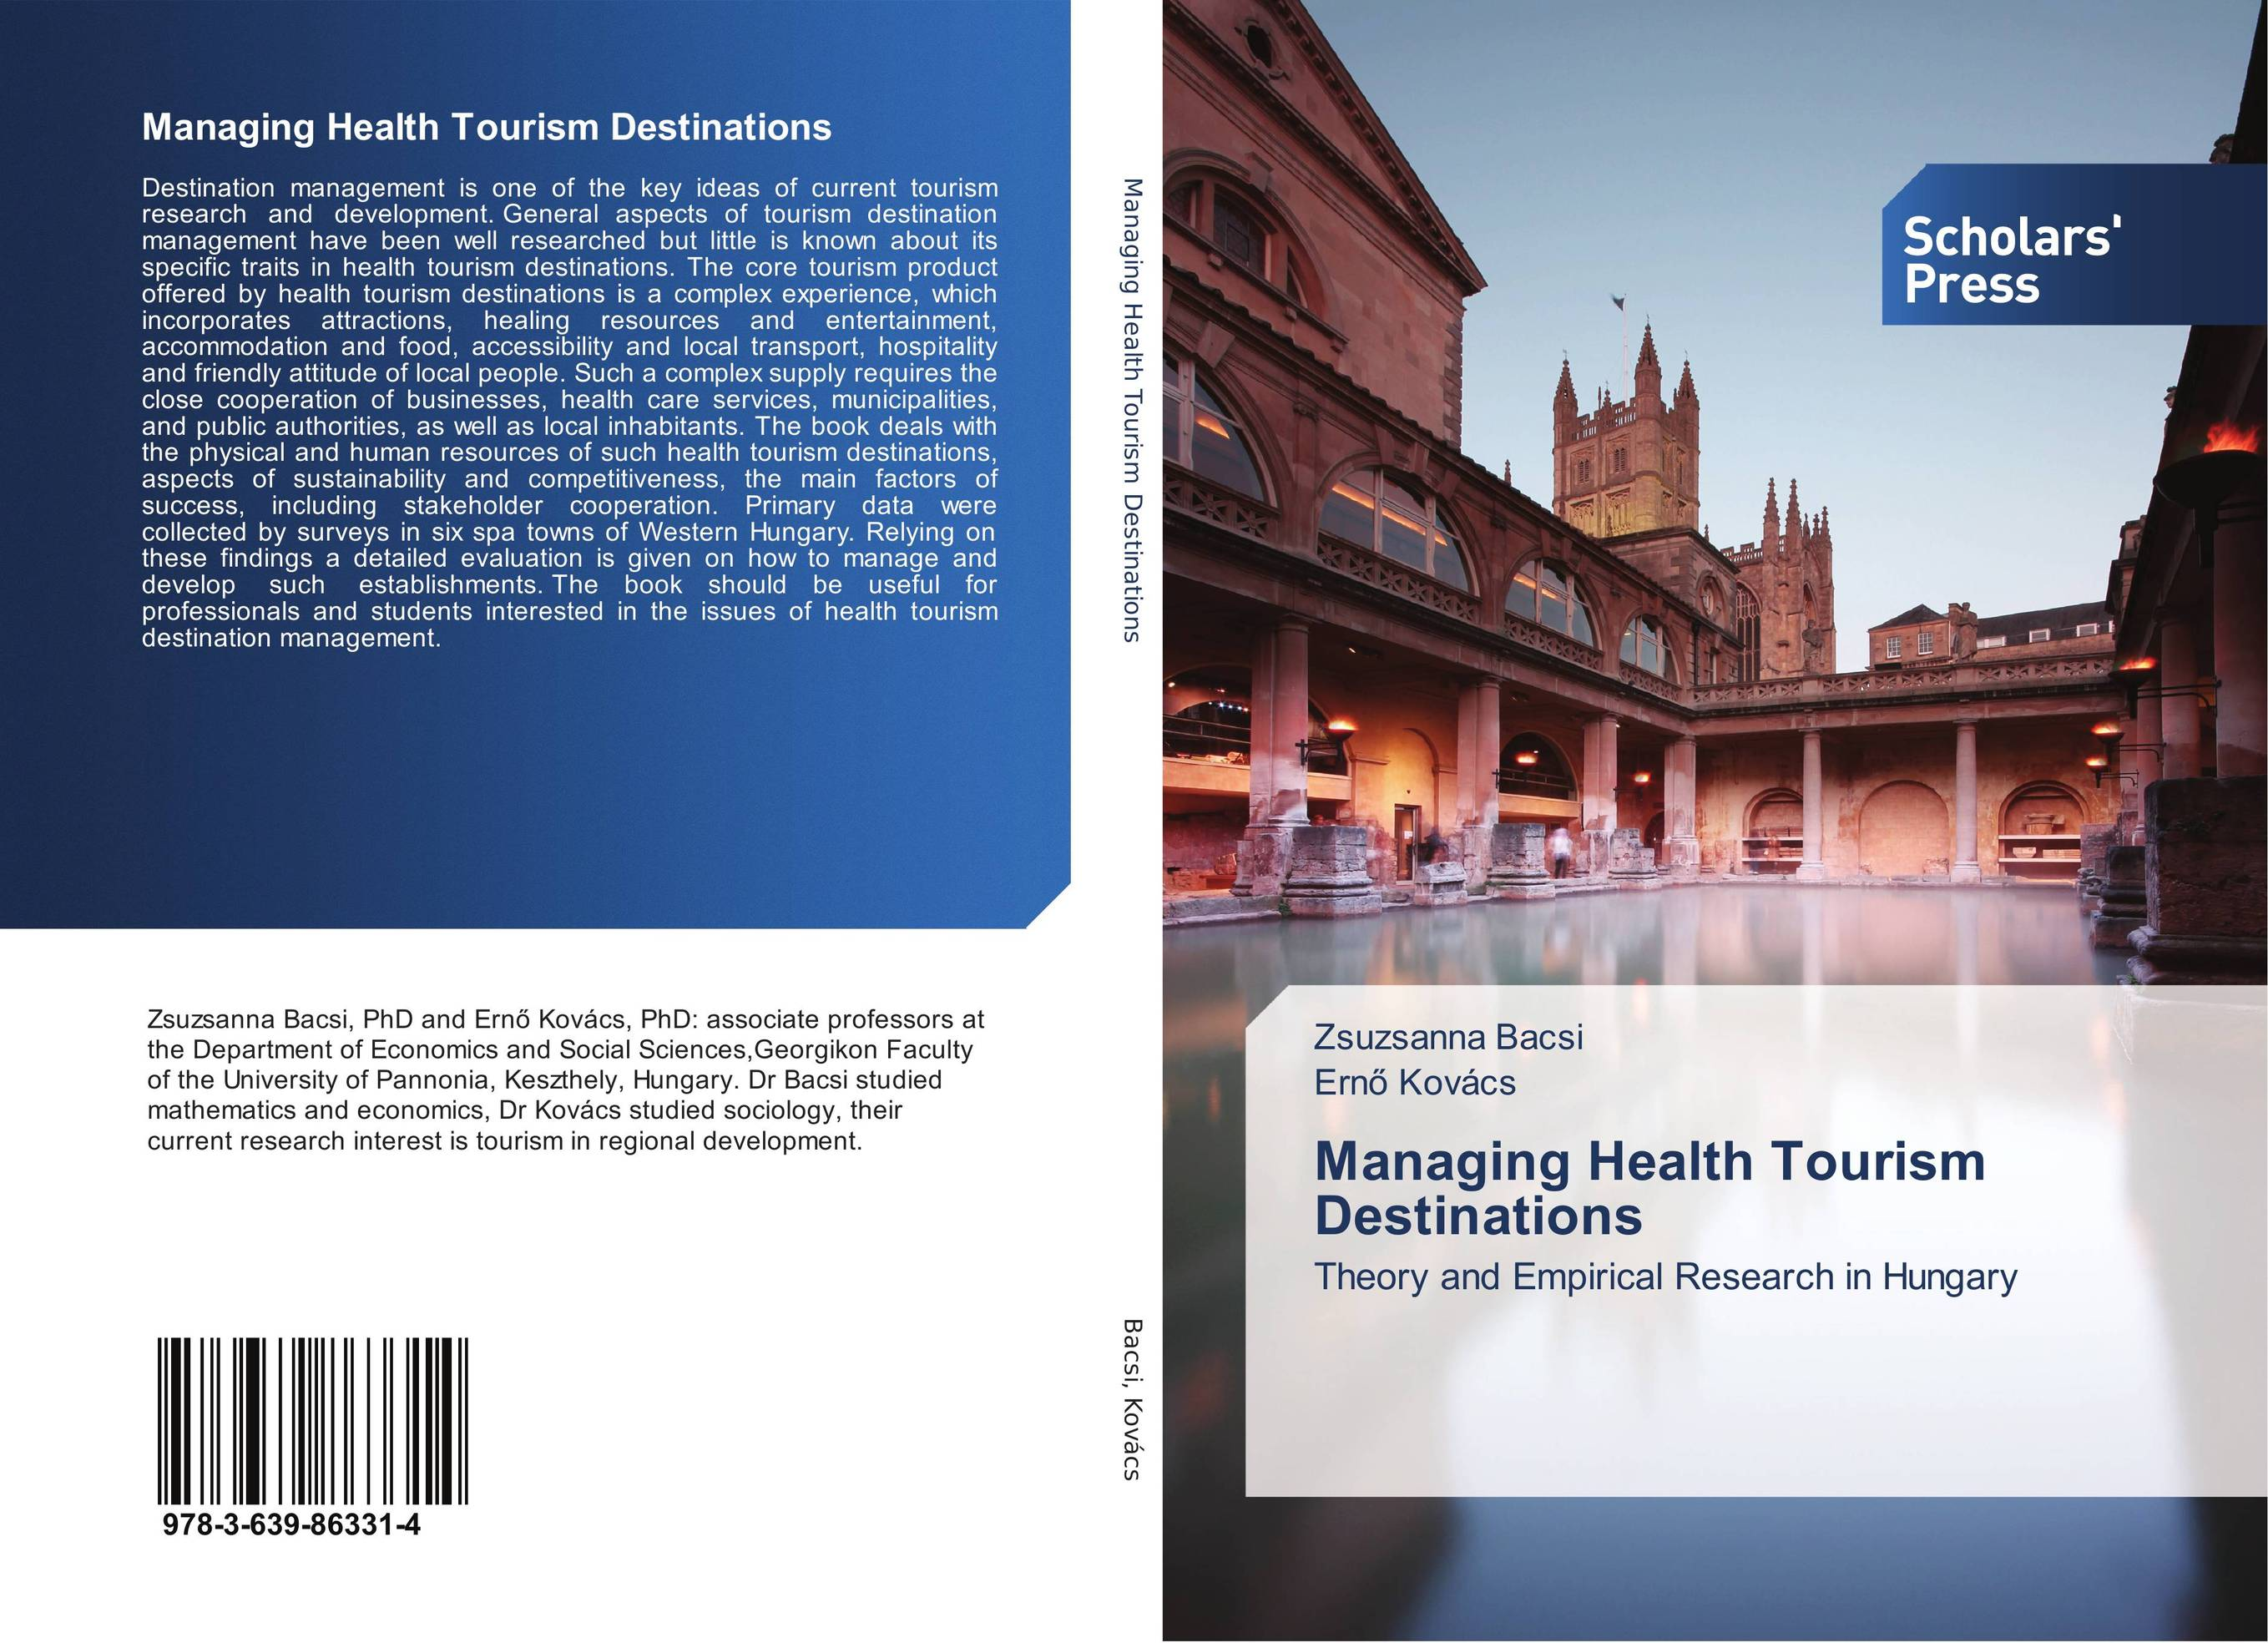 Managing Health Tourism Destinations